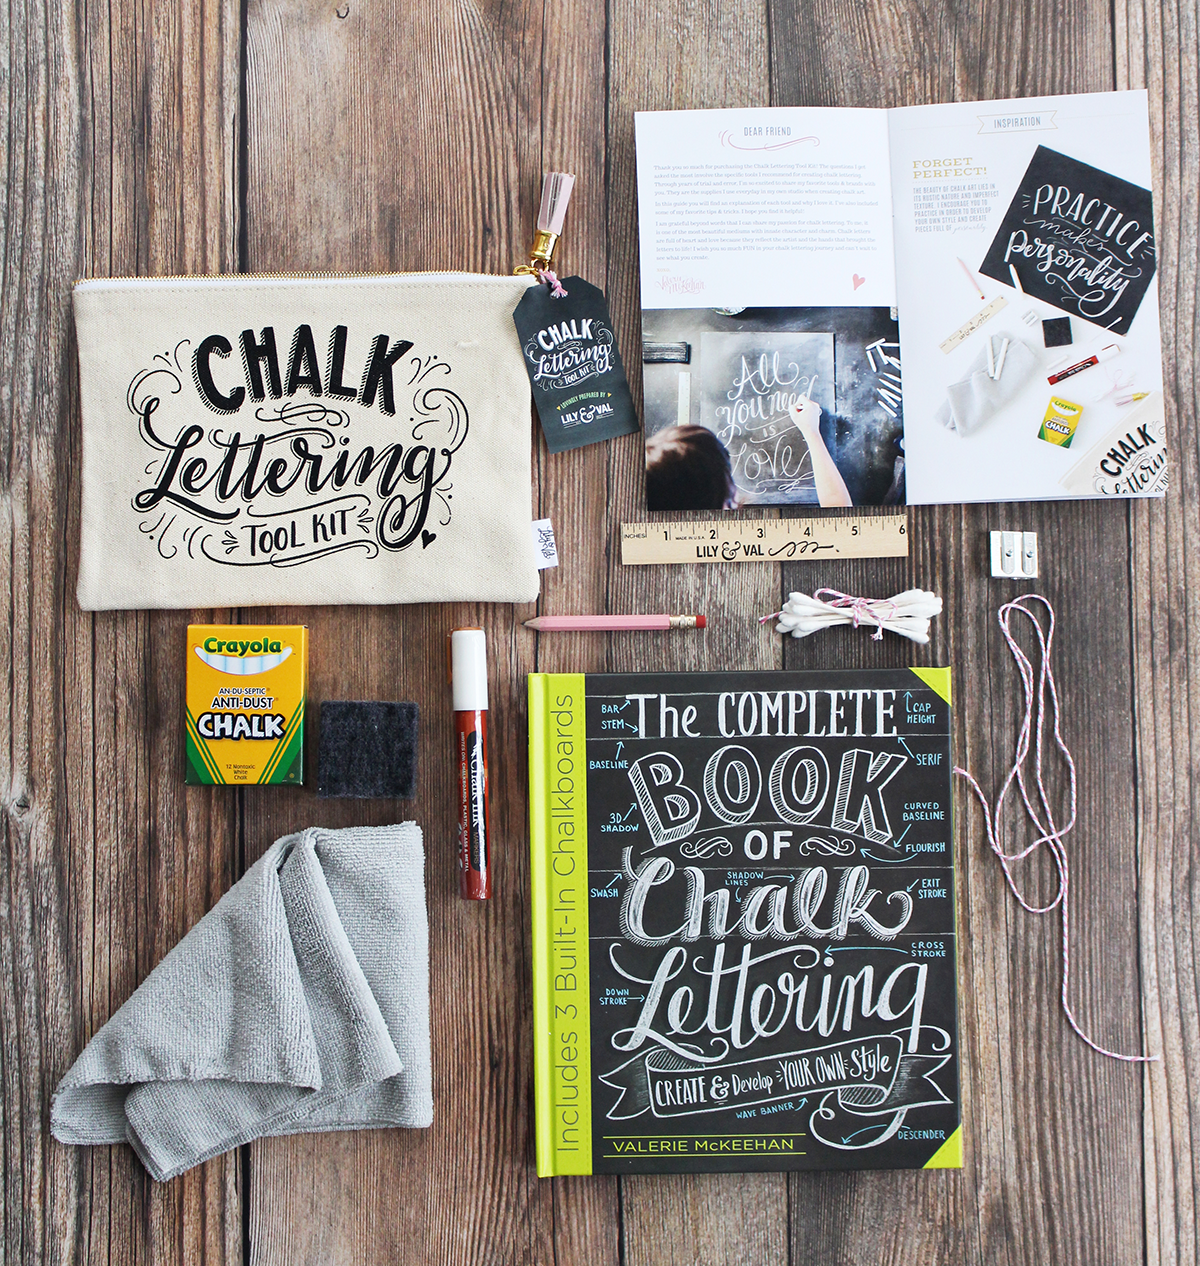 The Chalk Lettering Bundle includes the award-winning Chalk Lettering Toolkit and a signed copy of The Complete Book of Chalk Lettering for everything you need to get started with a chalk art hobby!